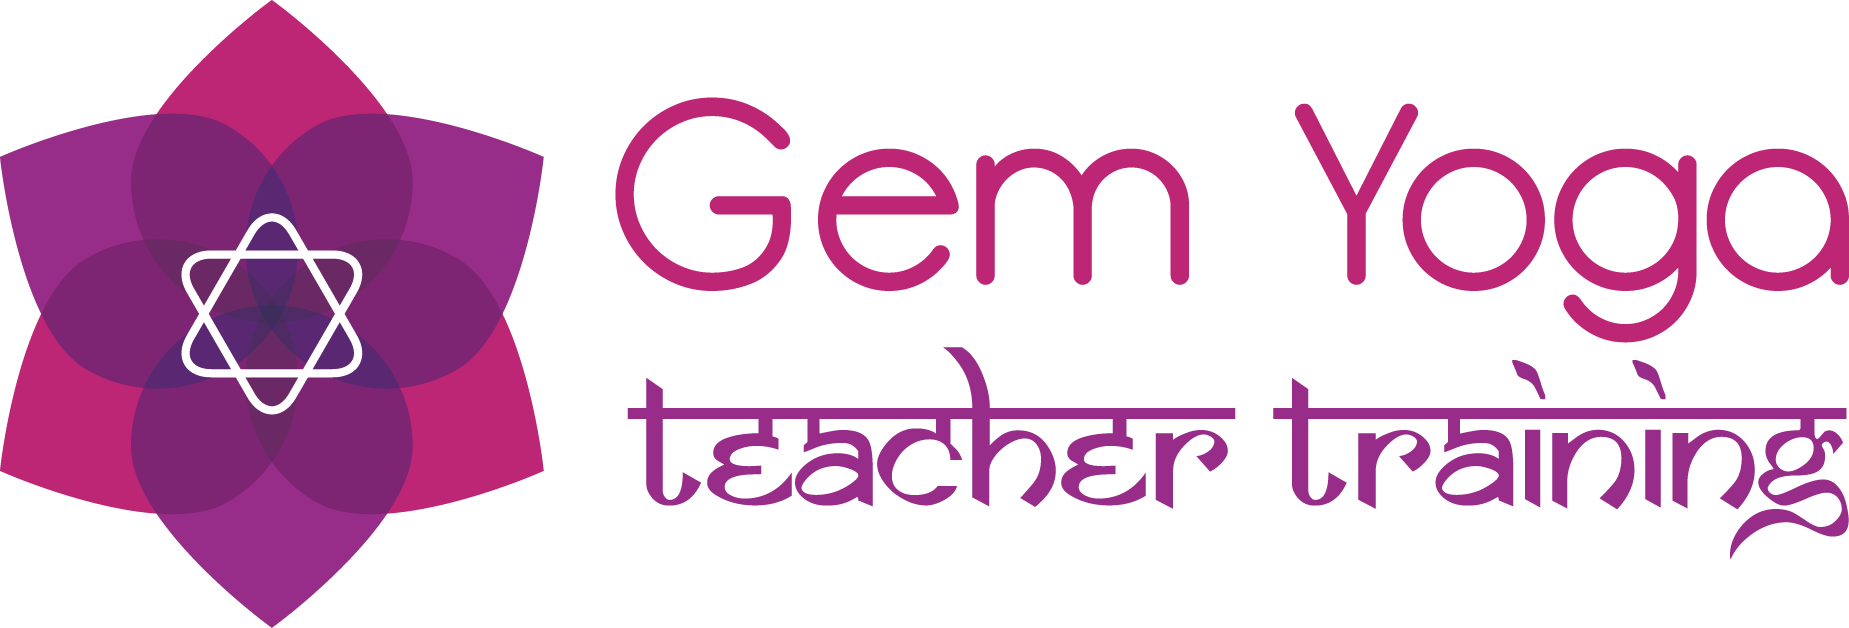 Yin Yoga Teacher Training - Gem Yoga Teacher Training